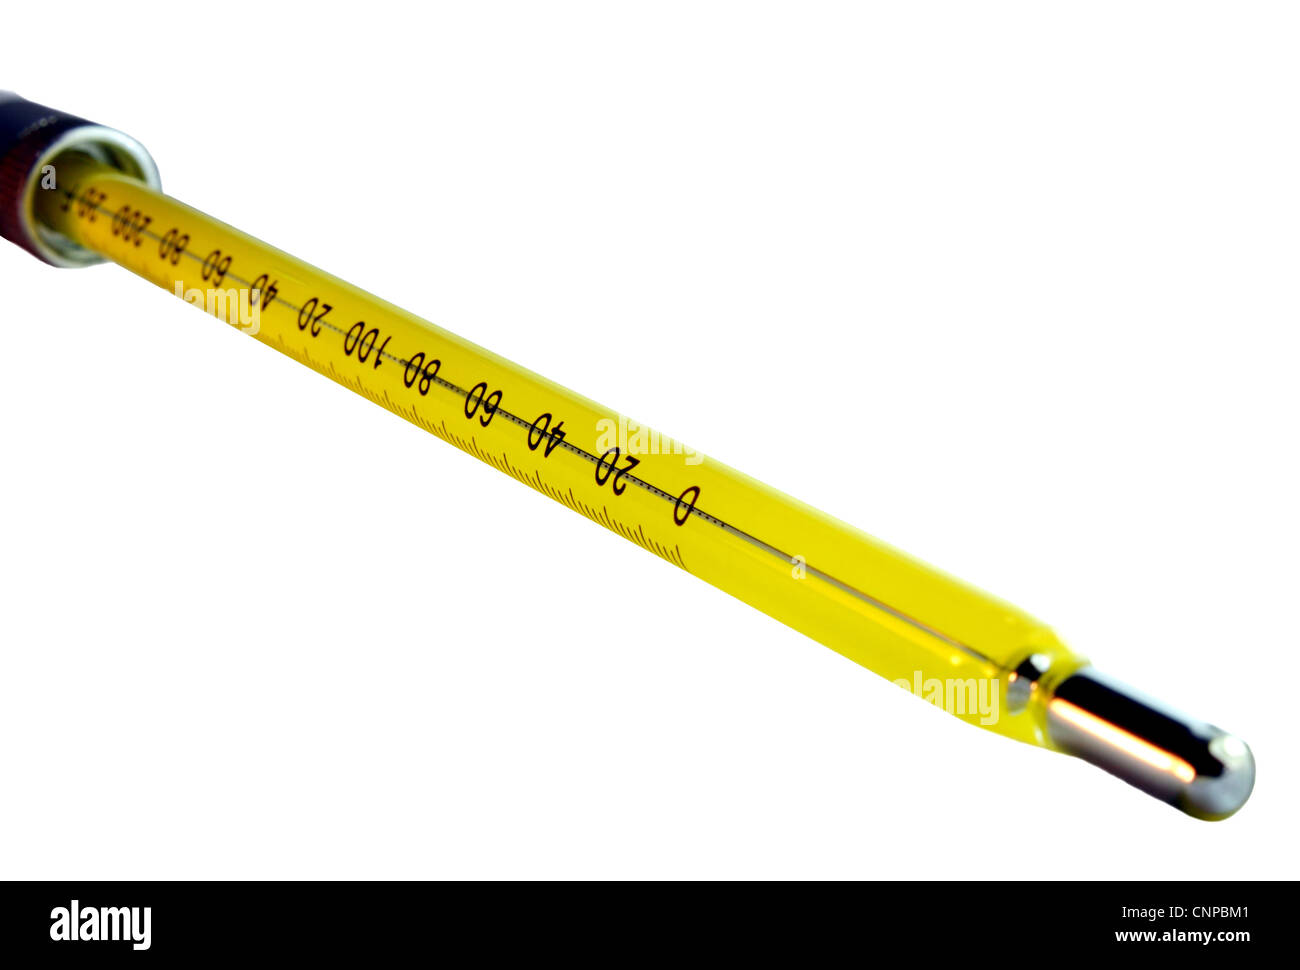 Yellow temperature gauge isolated on a white background - Stock Image